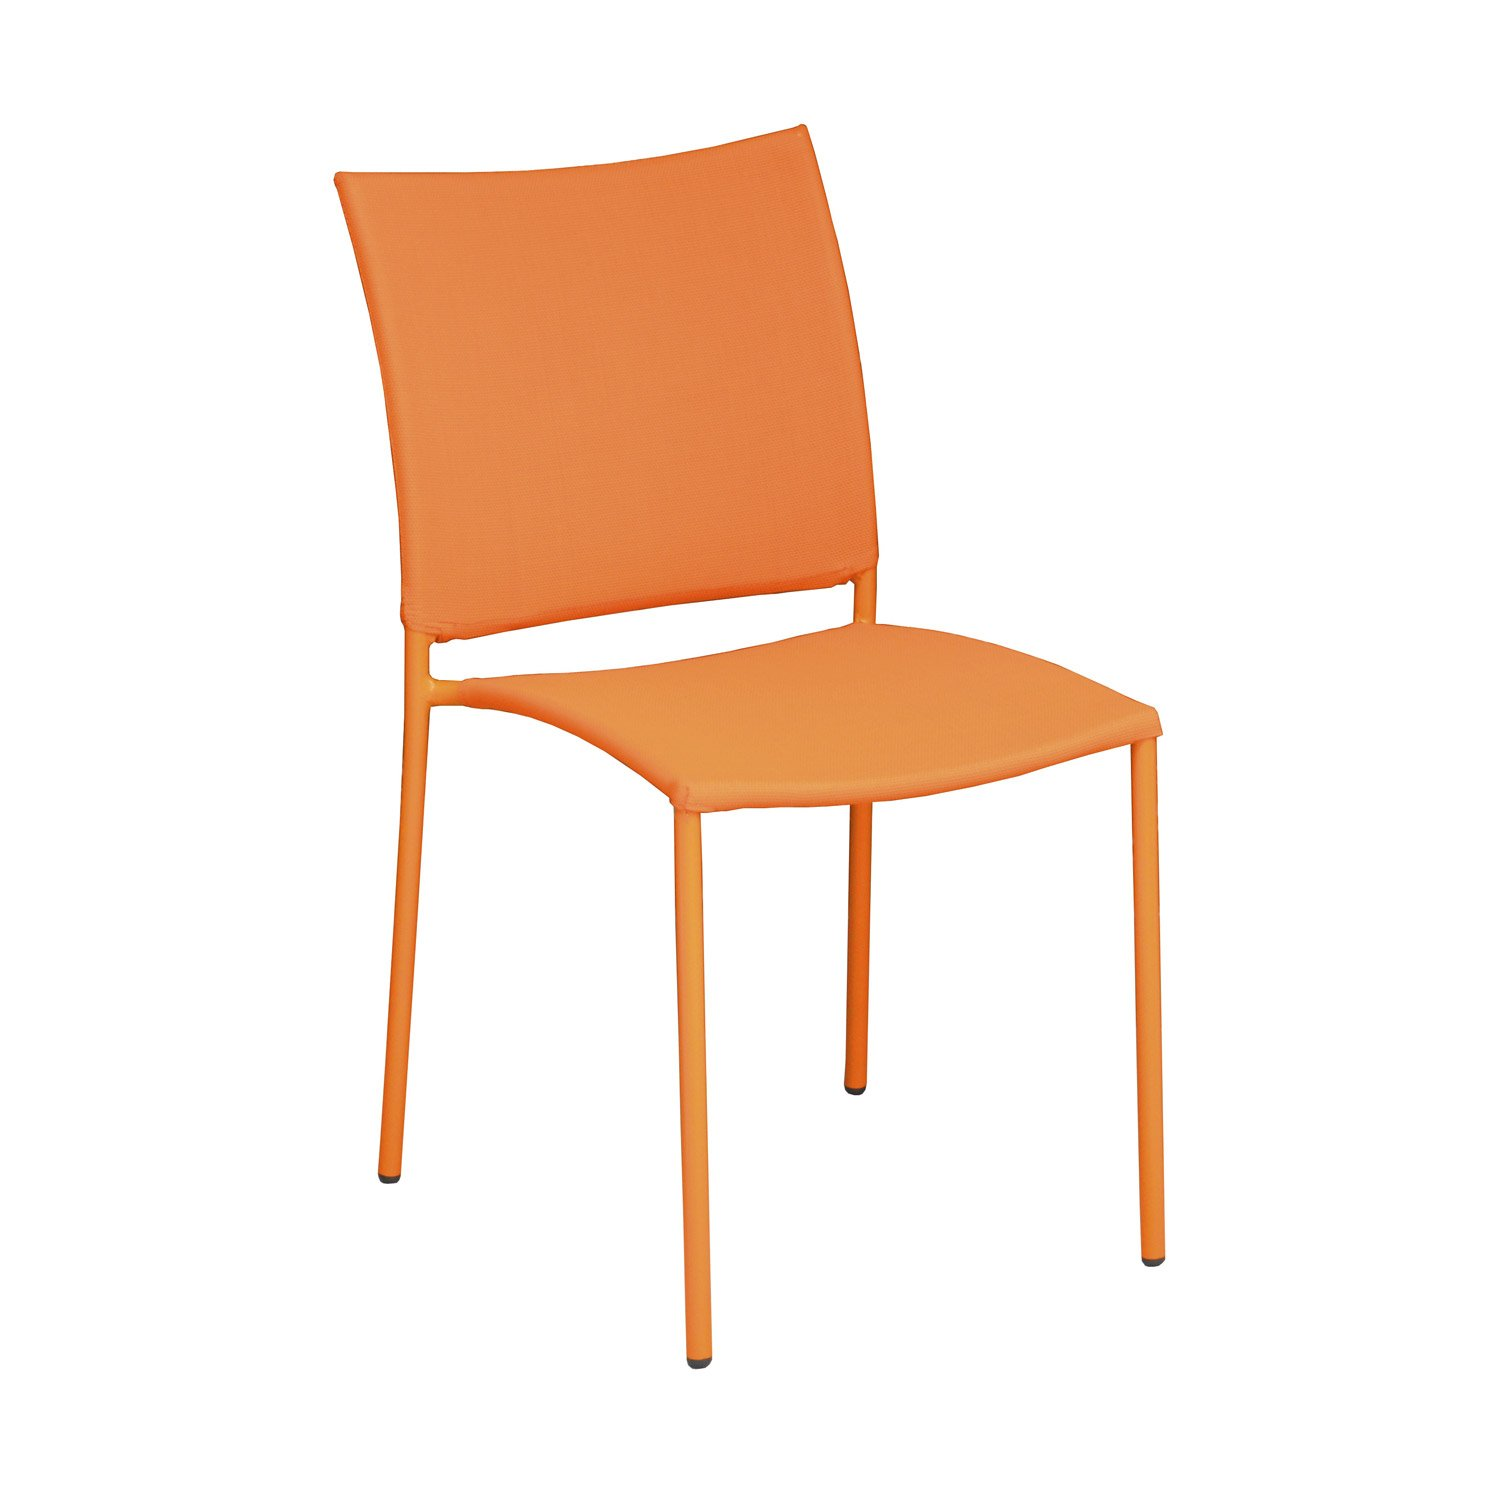 Chaise de jardin en acier globe orange leroy merlin for Chaise de jardin newton